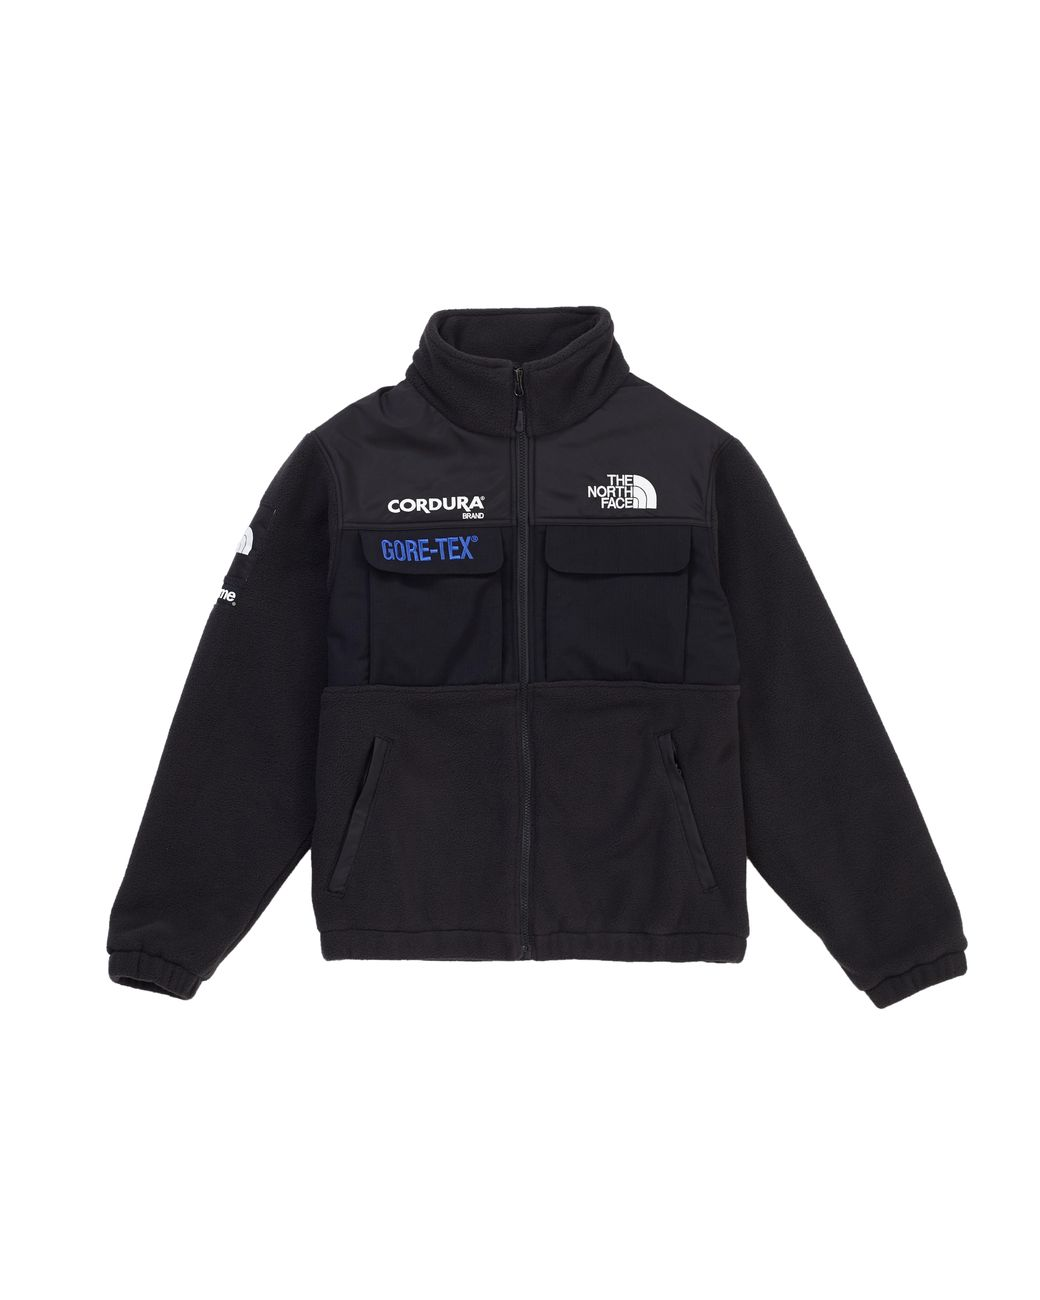 3f1873ca Supreme The North Face Expedition Fleece (fw18) Jacket Black in Black for  Men - Lyst